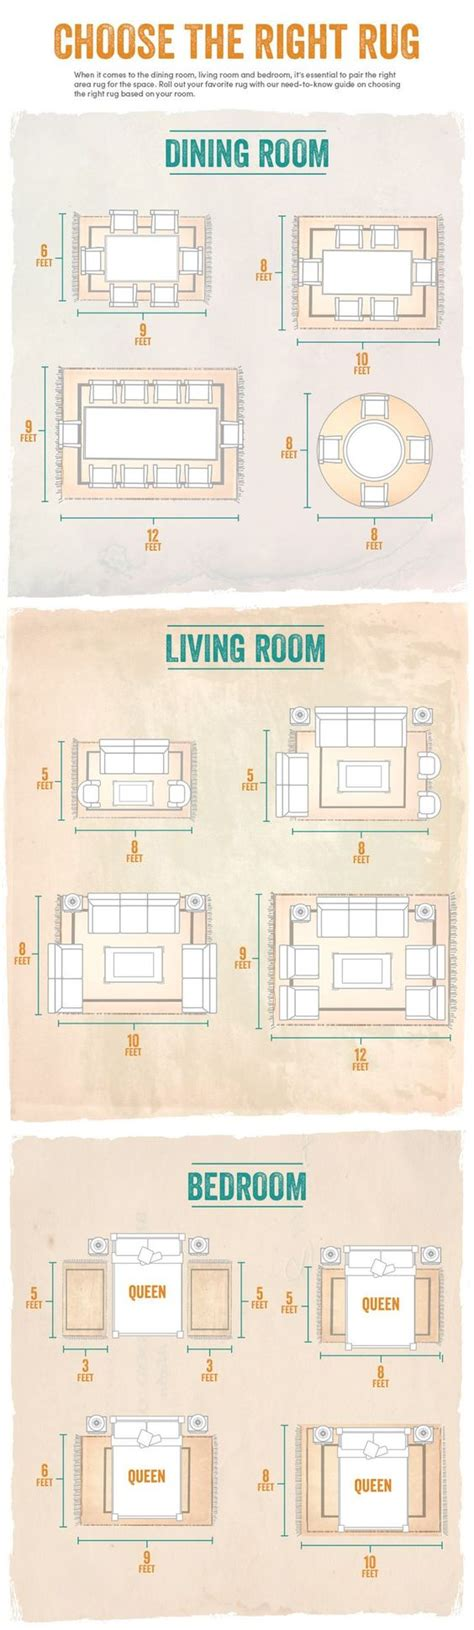 Rug Placement Rugs And Rug Size On Pinterest Area Rug Sizes Guide